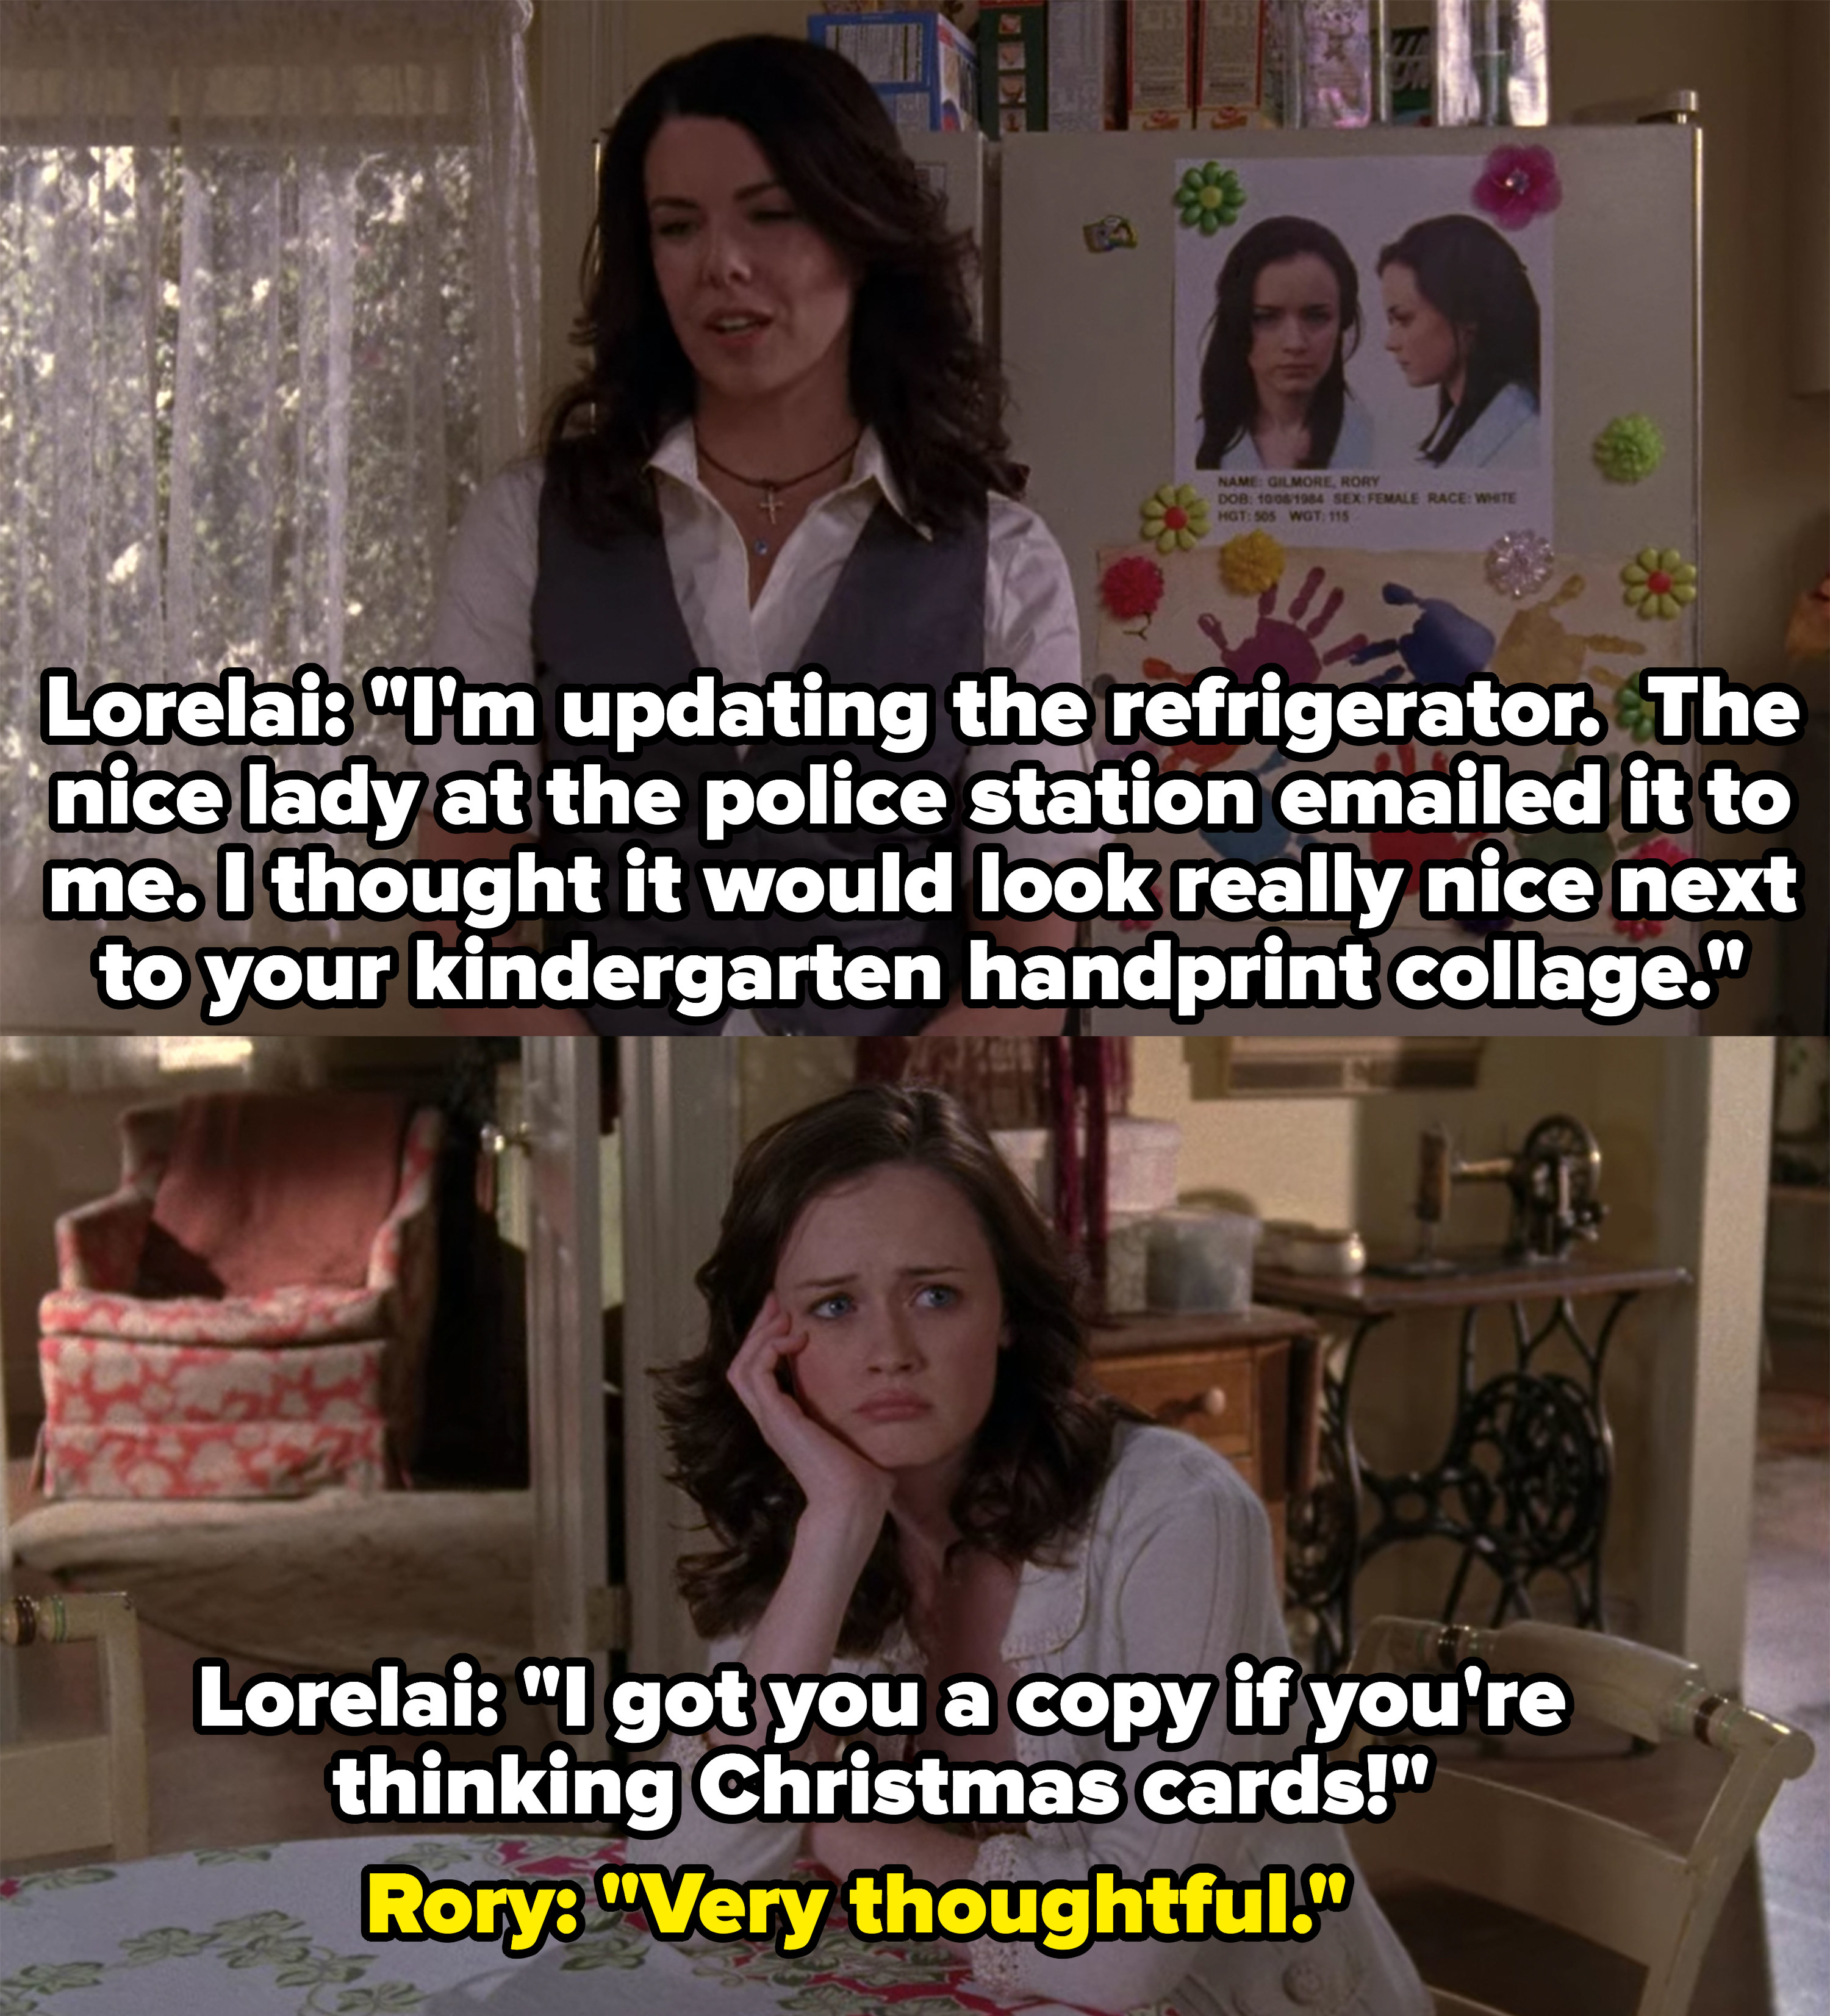 Lorelai teases Rory by hanging her mugshot on the fridge, doesn't appear to even be mad